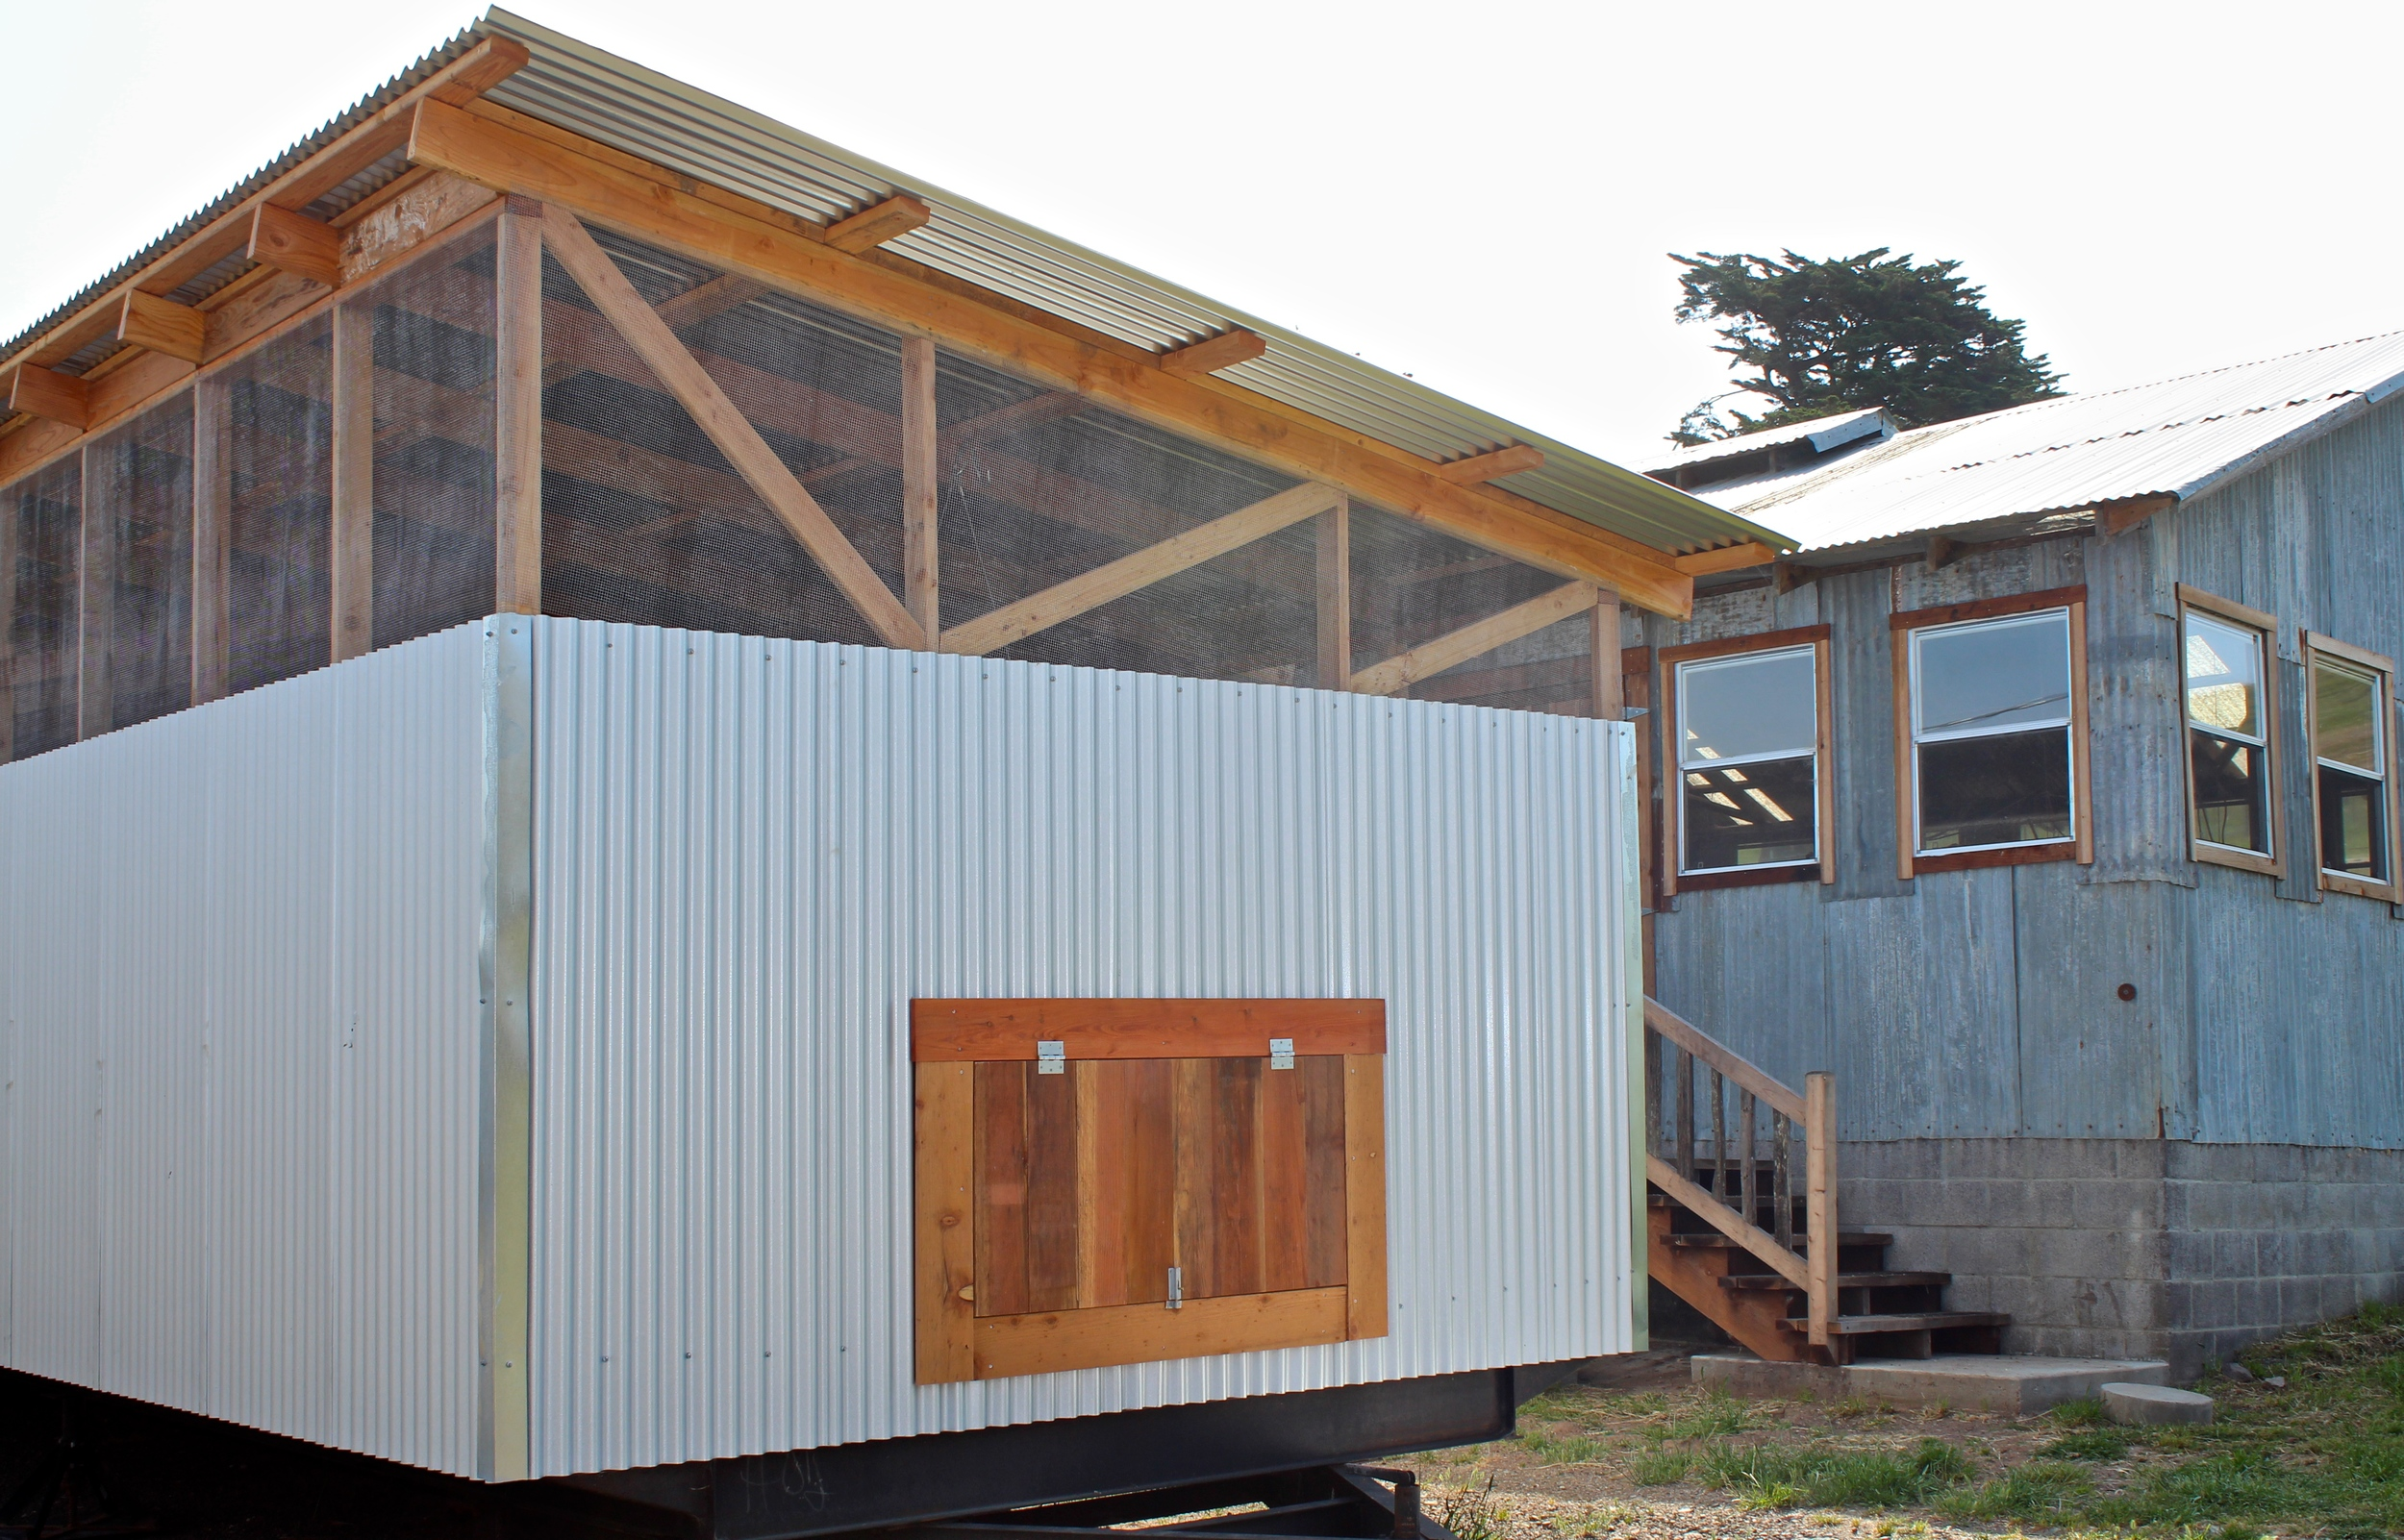 Two chicken houses